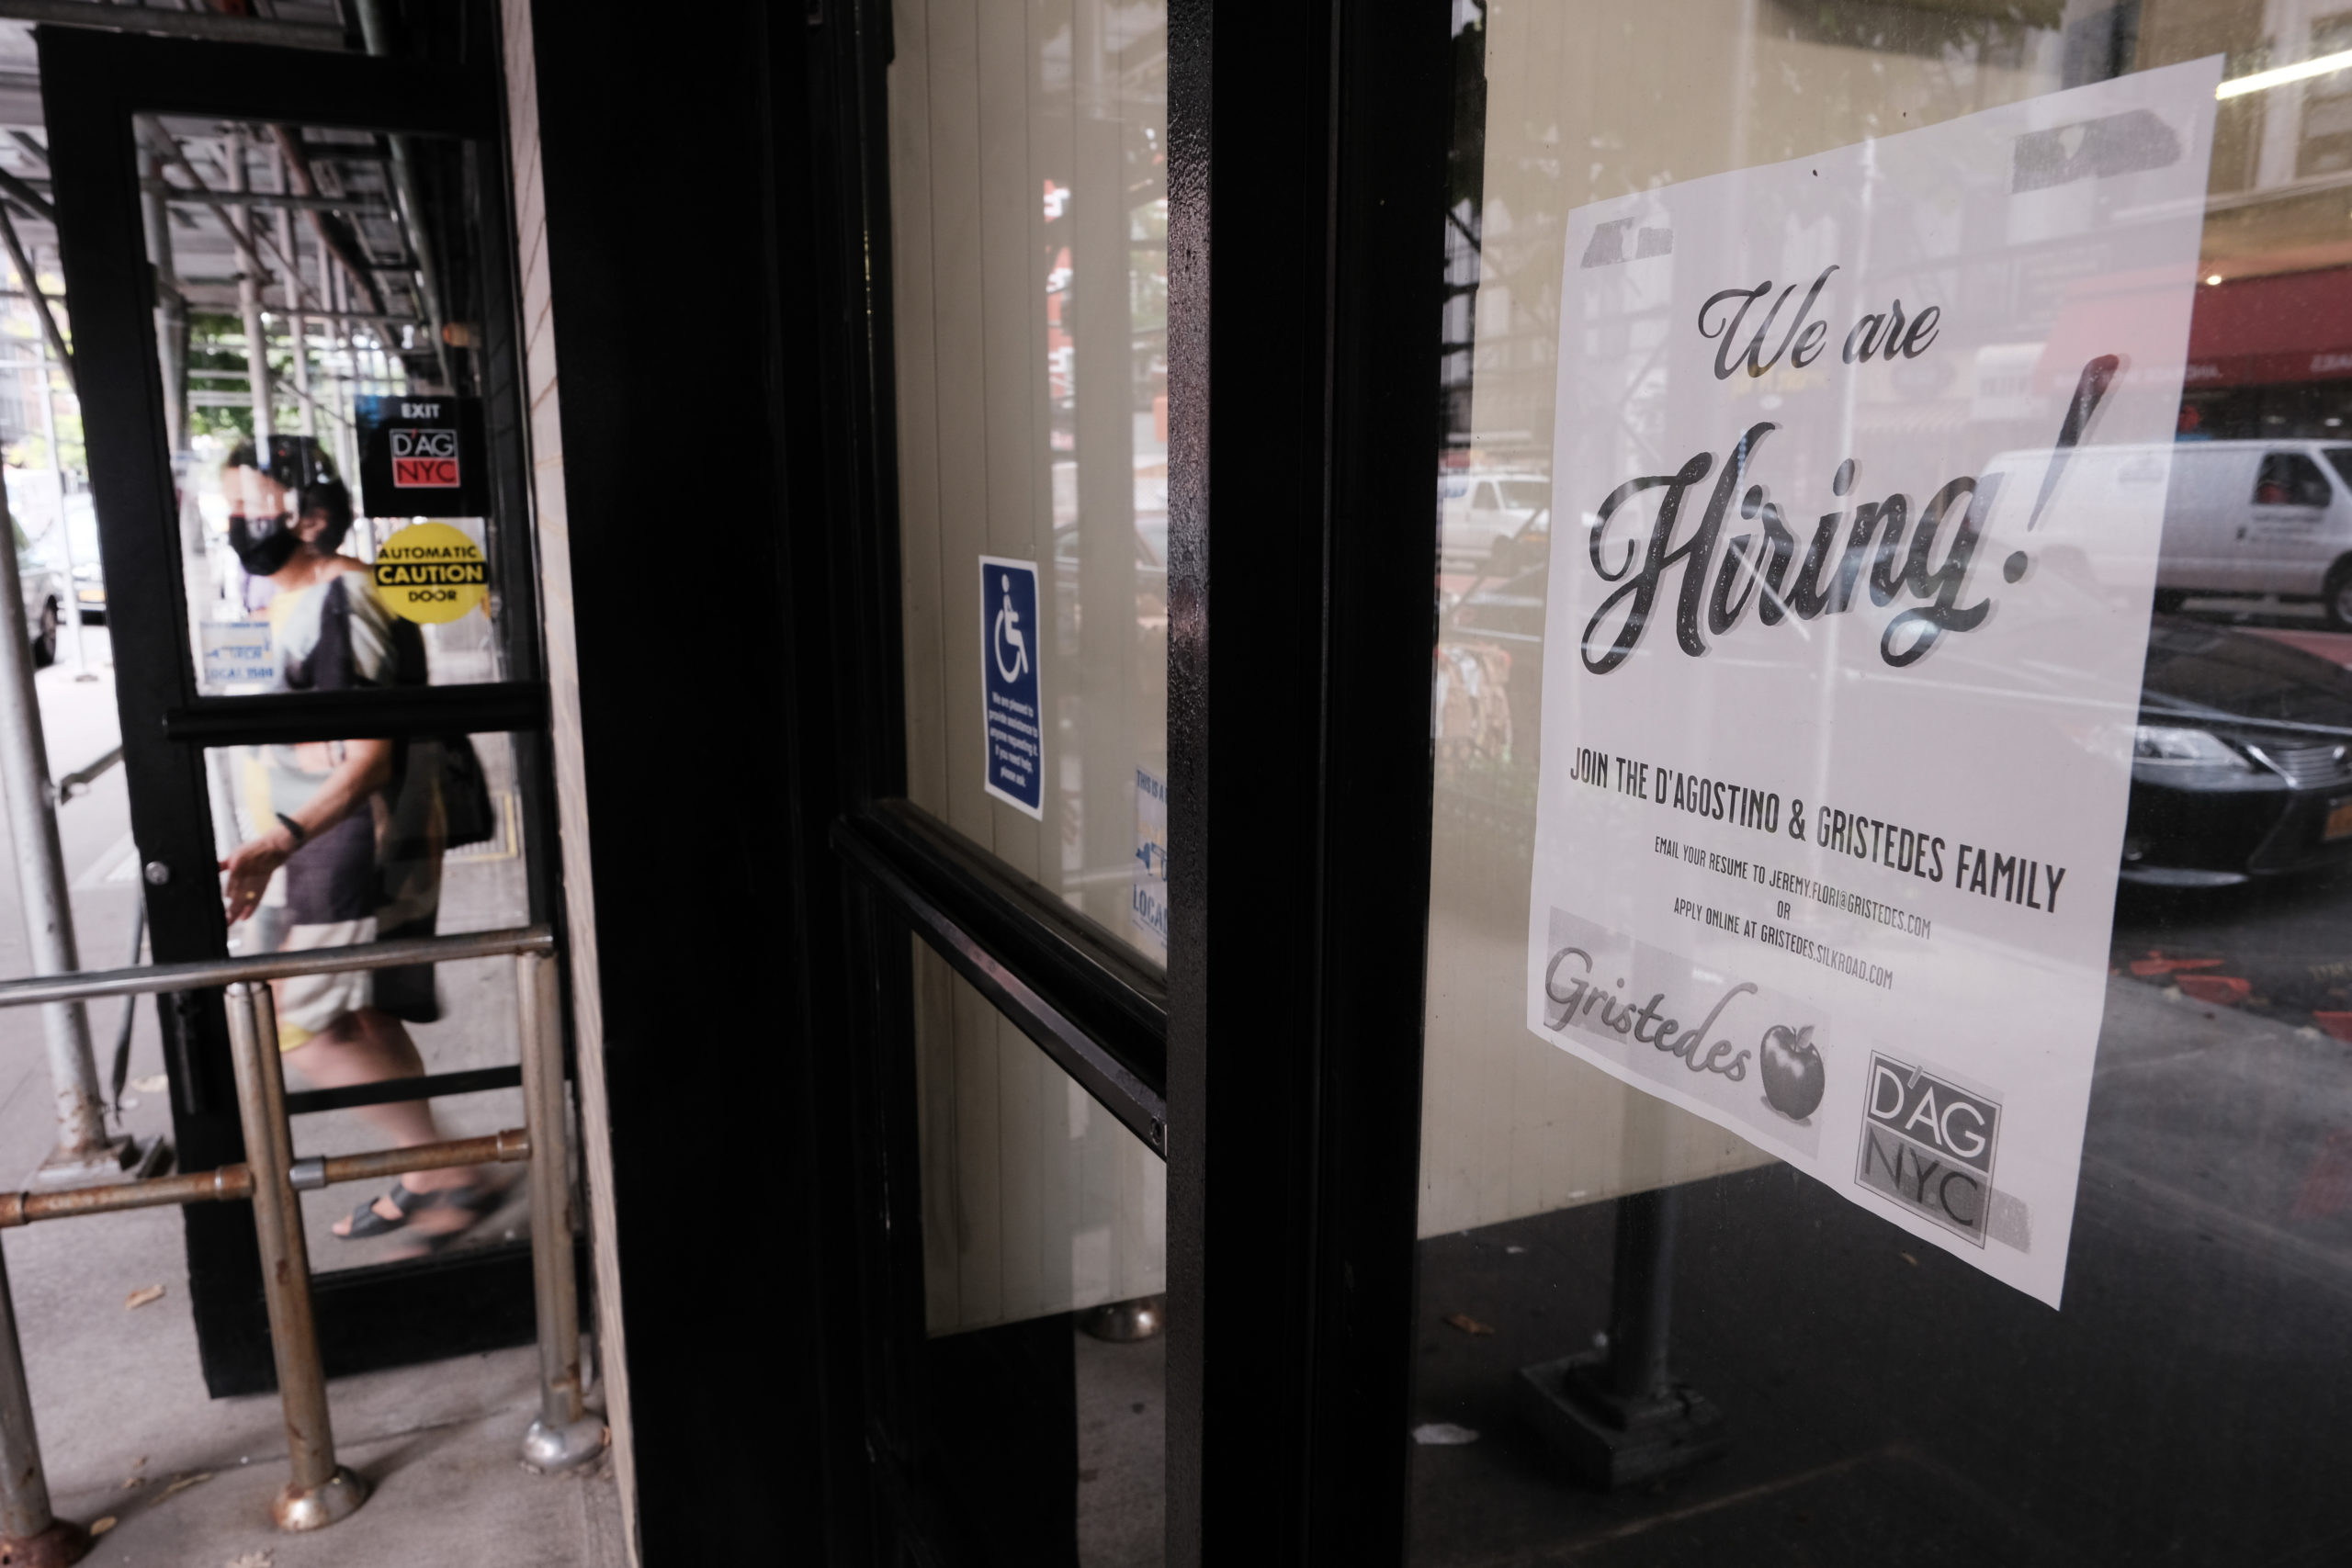 A hiring sign is displayed in a store window in New York City on Aug. 19. (Spencer Platt/Getty Images)